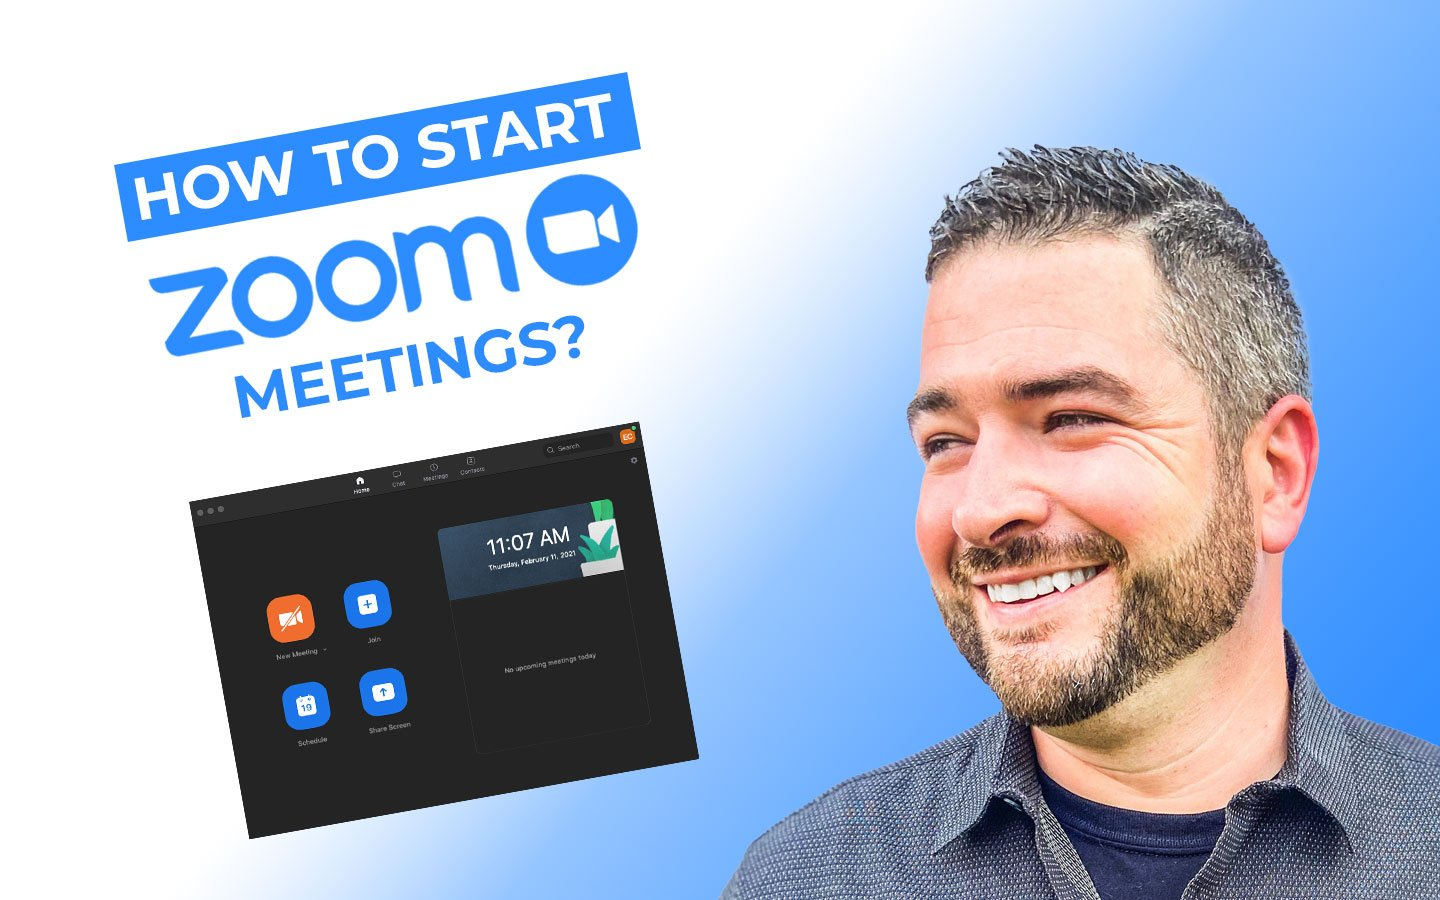 How to Start Zoom Meetings